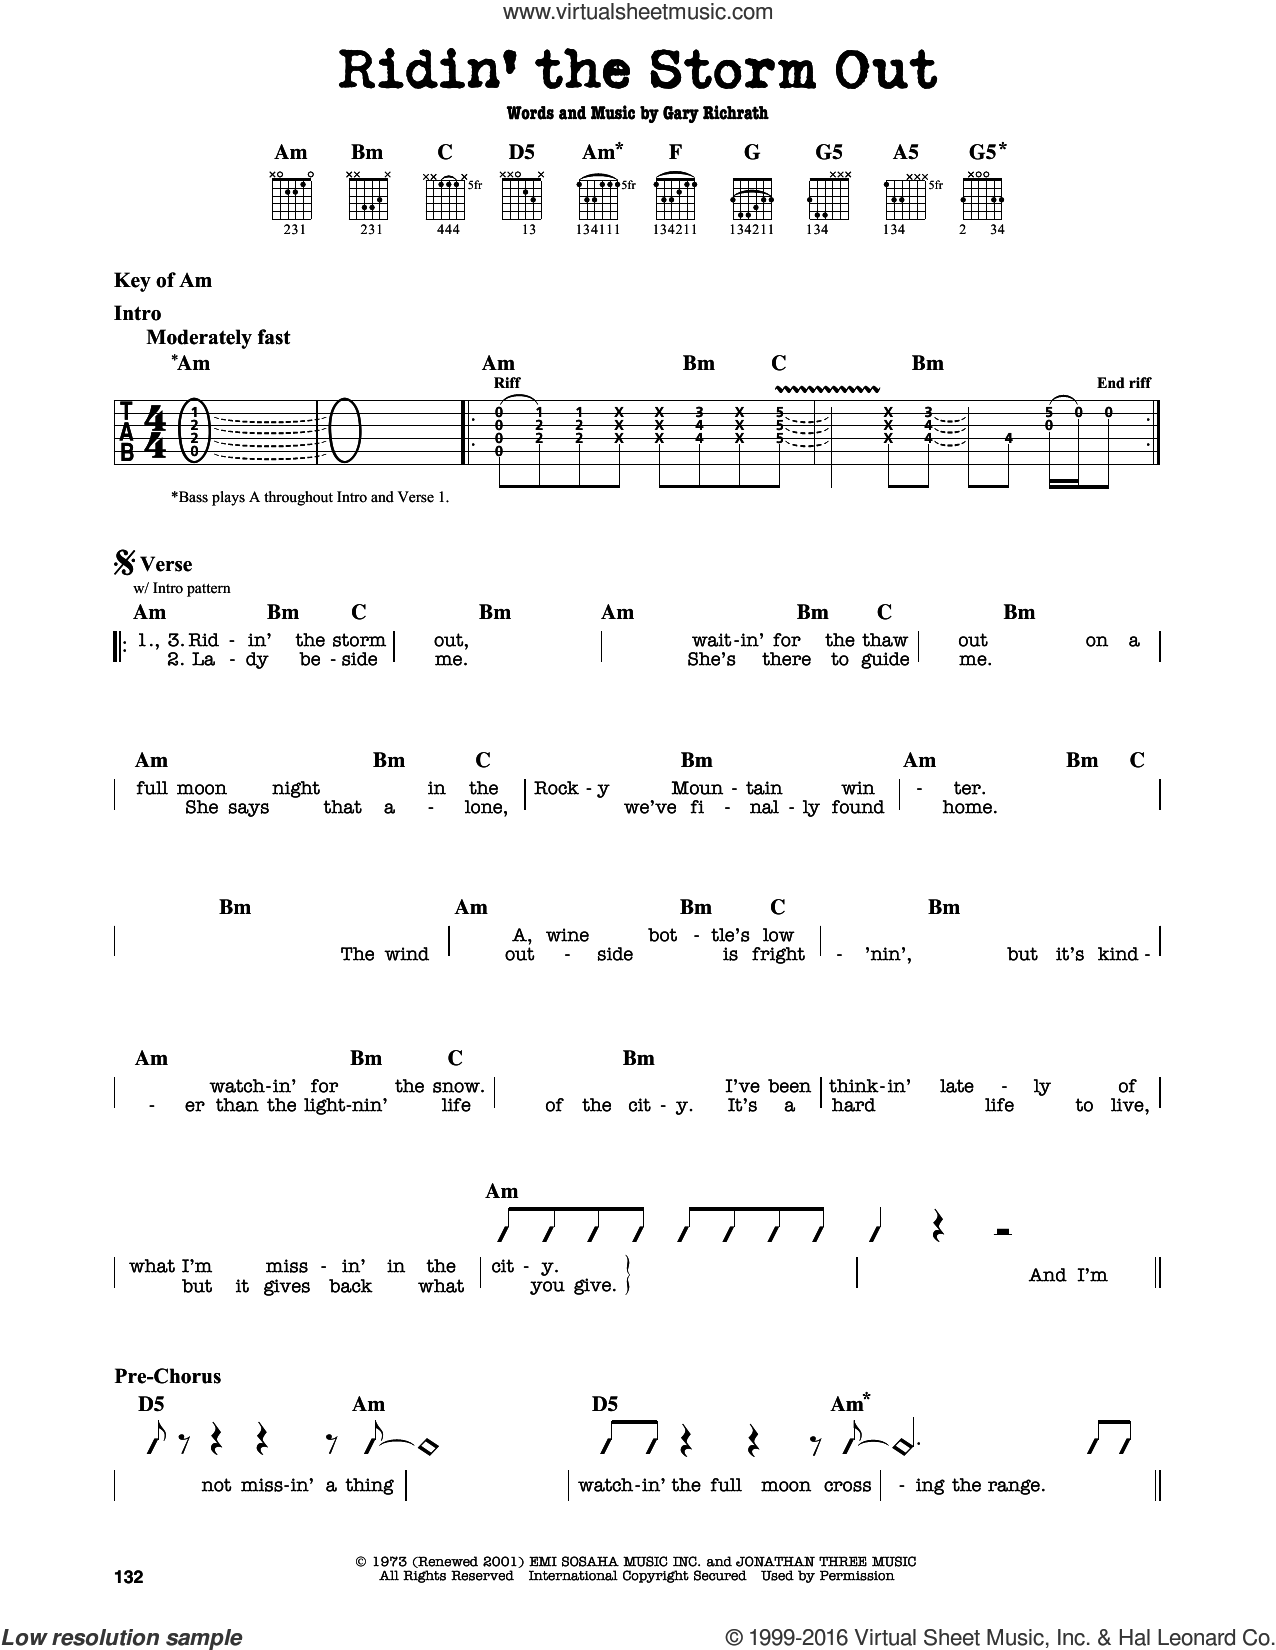 Ridin' The Storm Out sheet music for guitar solo (lead sheet) by REO Speedwagon, intermediate guitar (lead sheet). Score Image Preview.